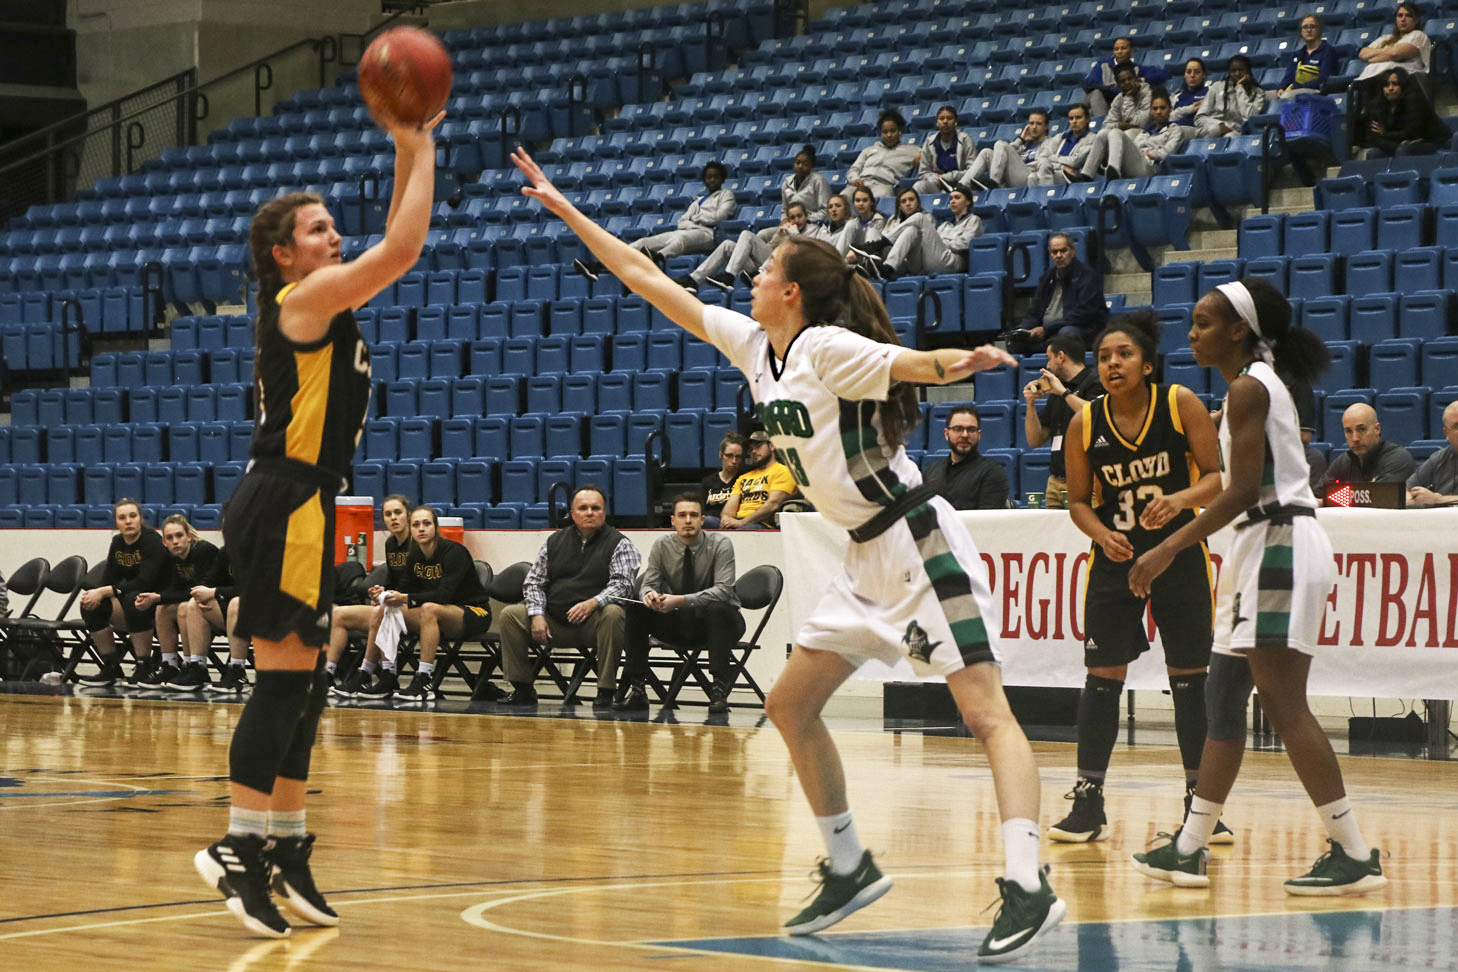 Karolina Szydlowska, forward from Wroclaw, Poland, attempts to block a shot ,trying to keep the Lady Saints ahead. Seward won the game easily 74-59 over Cloud County and advanced to the quarterfinal game at 3 p.m. Monday.